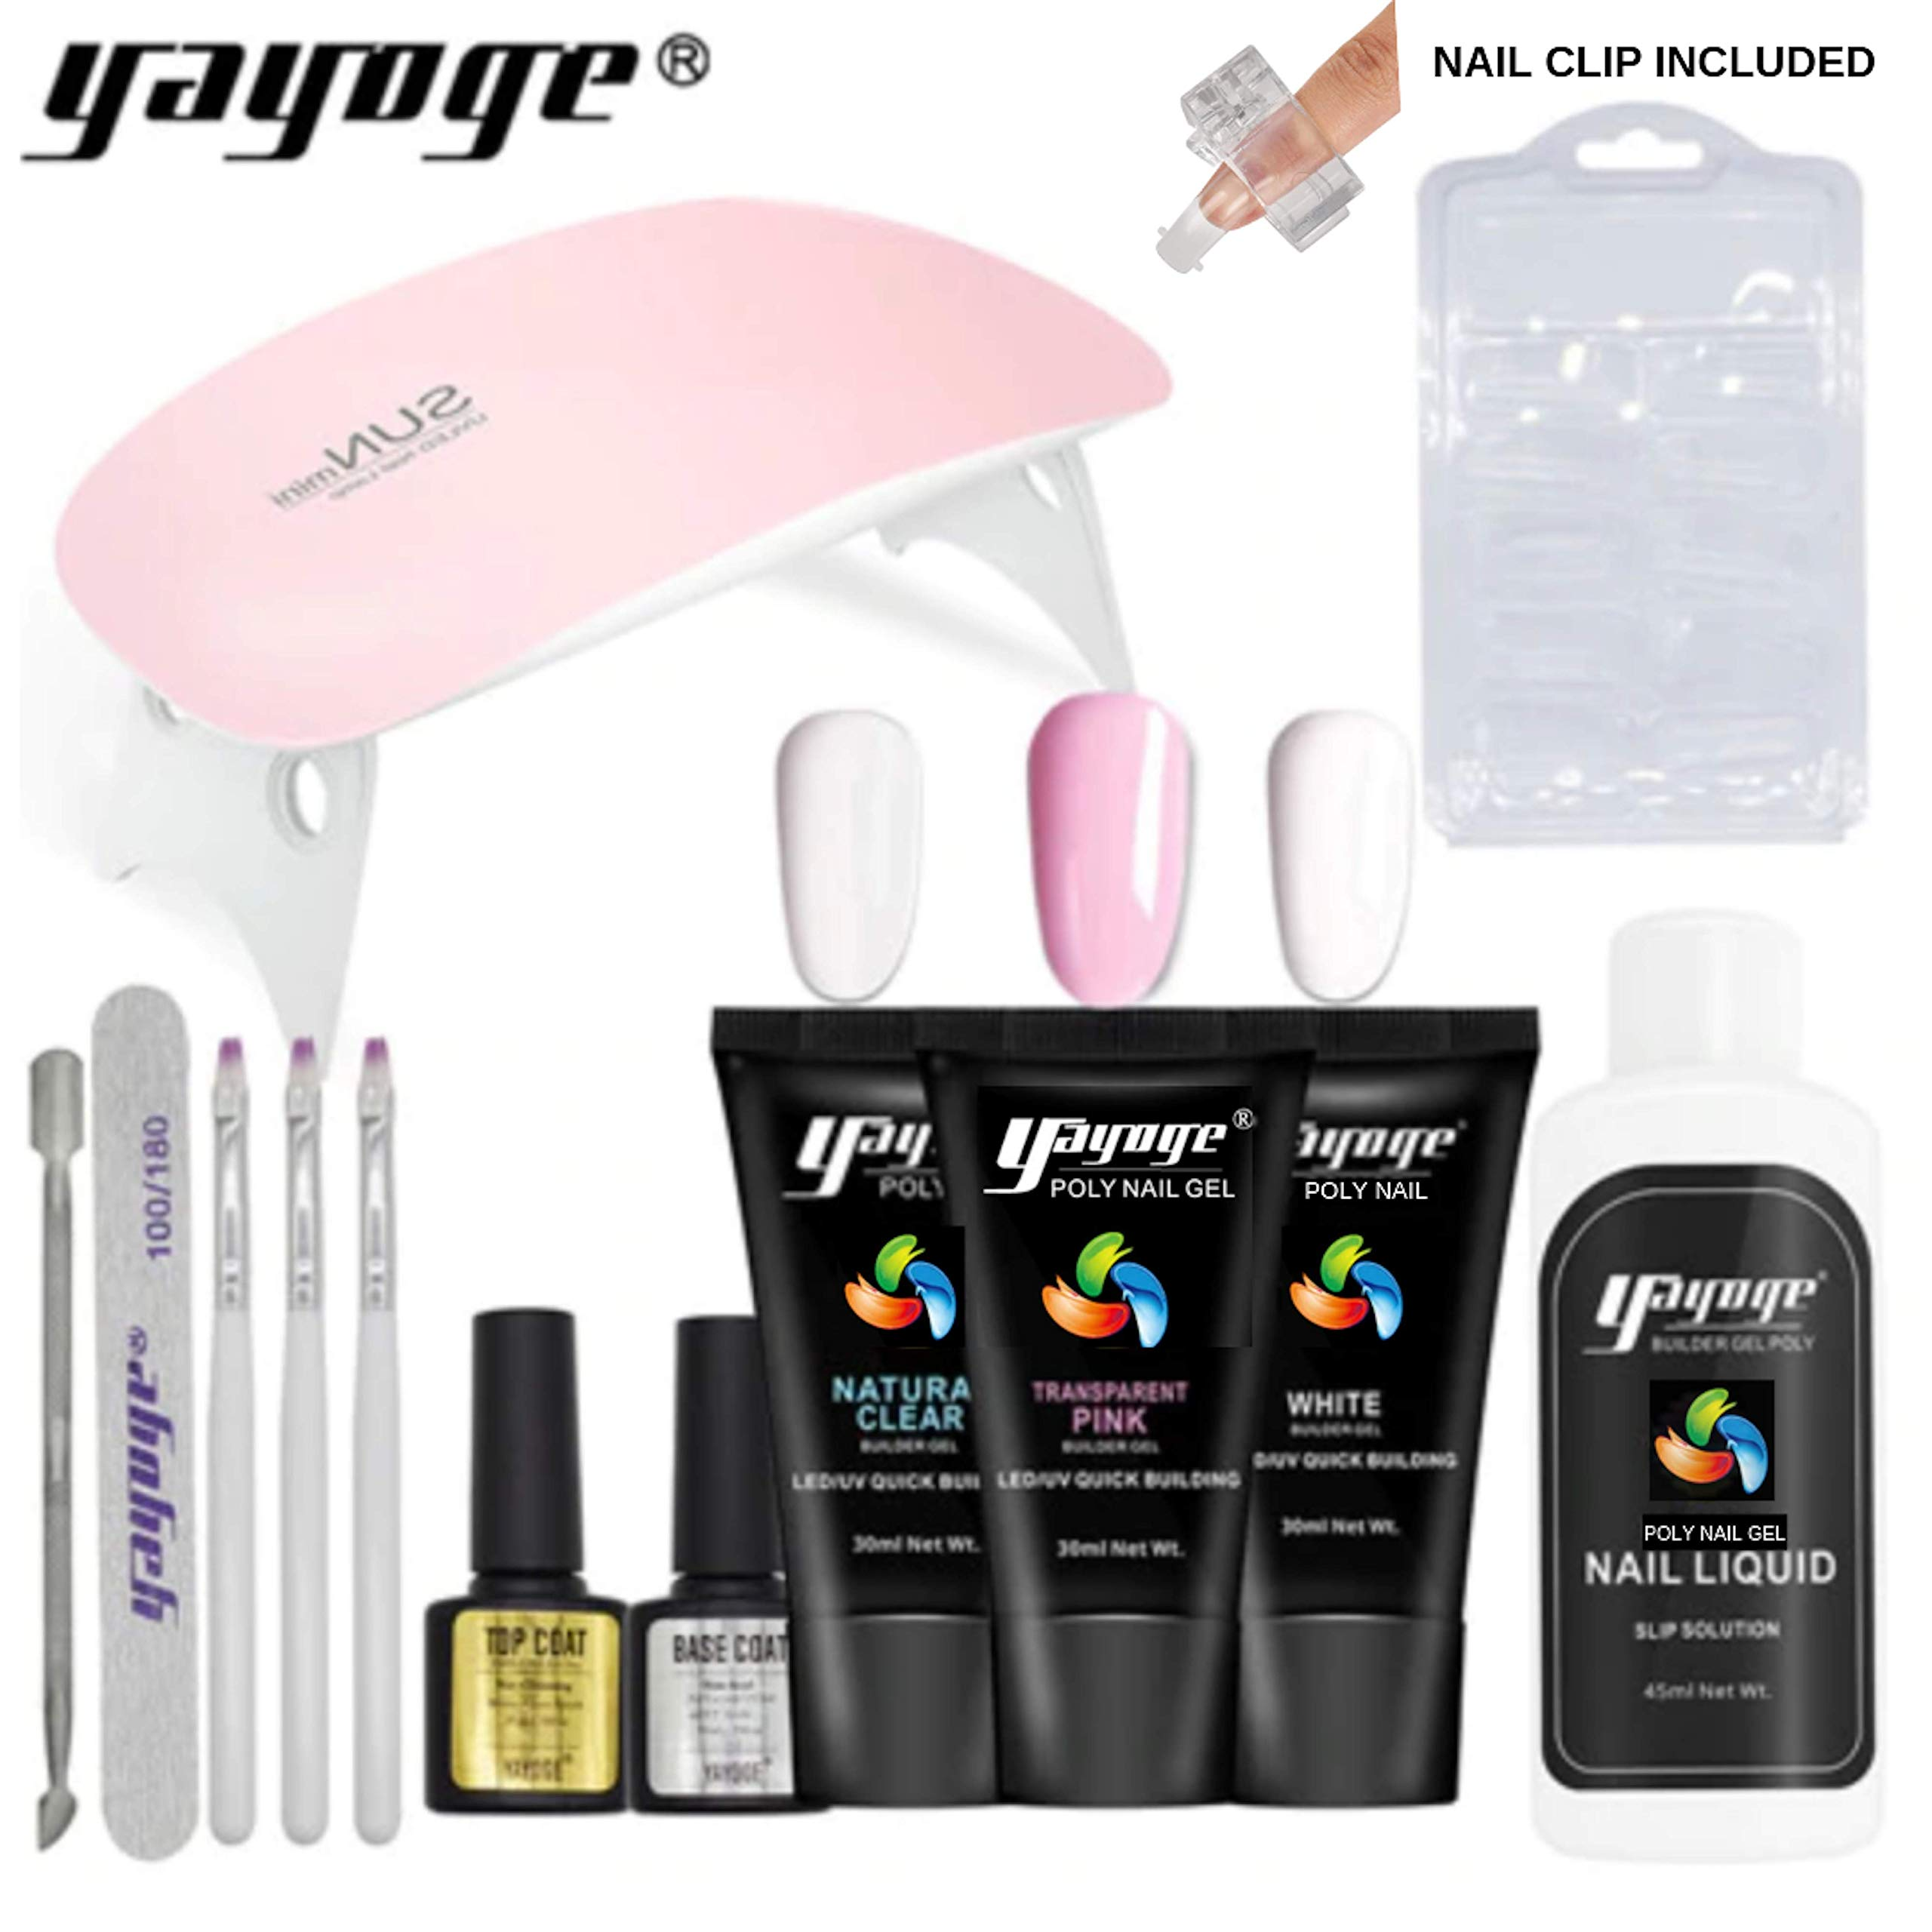 GenZ Poly Nail Gel Nail Extension 14 Pcs Complete Professional Nail Set Thickening Tool UV LED by GenZ UV Acryl Gel / PolyGel Yayoge